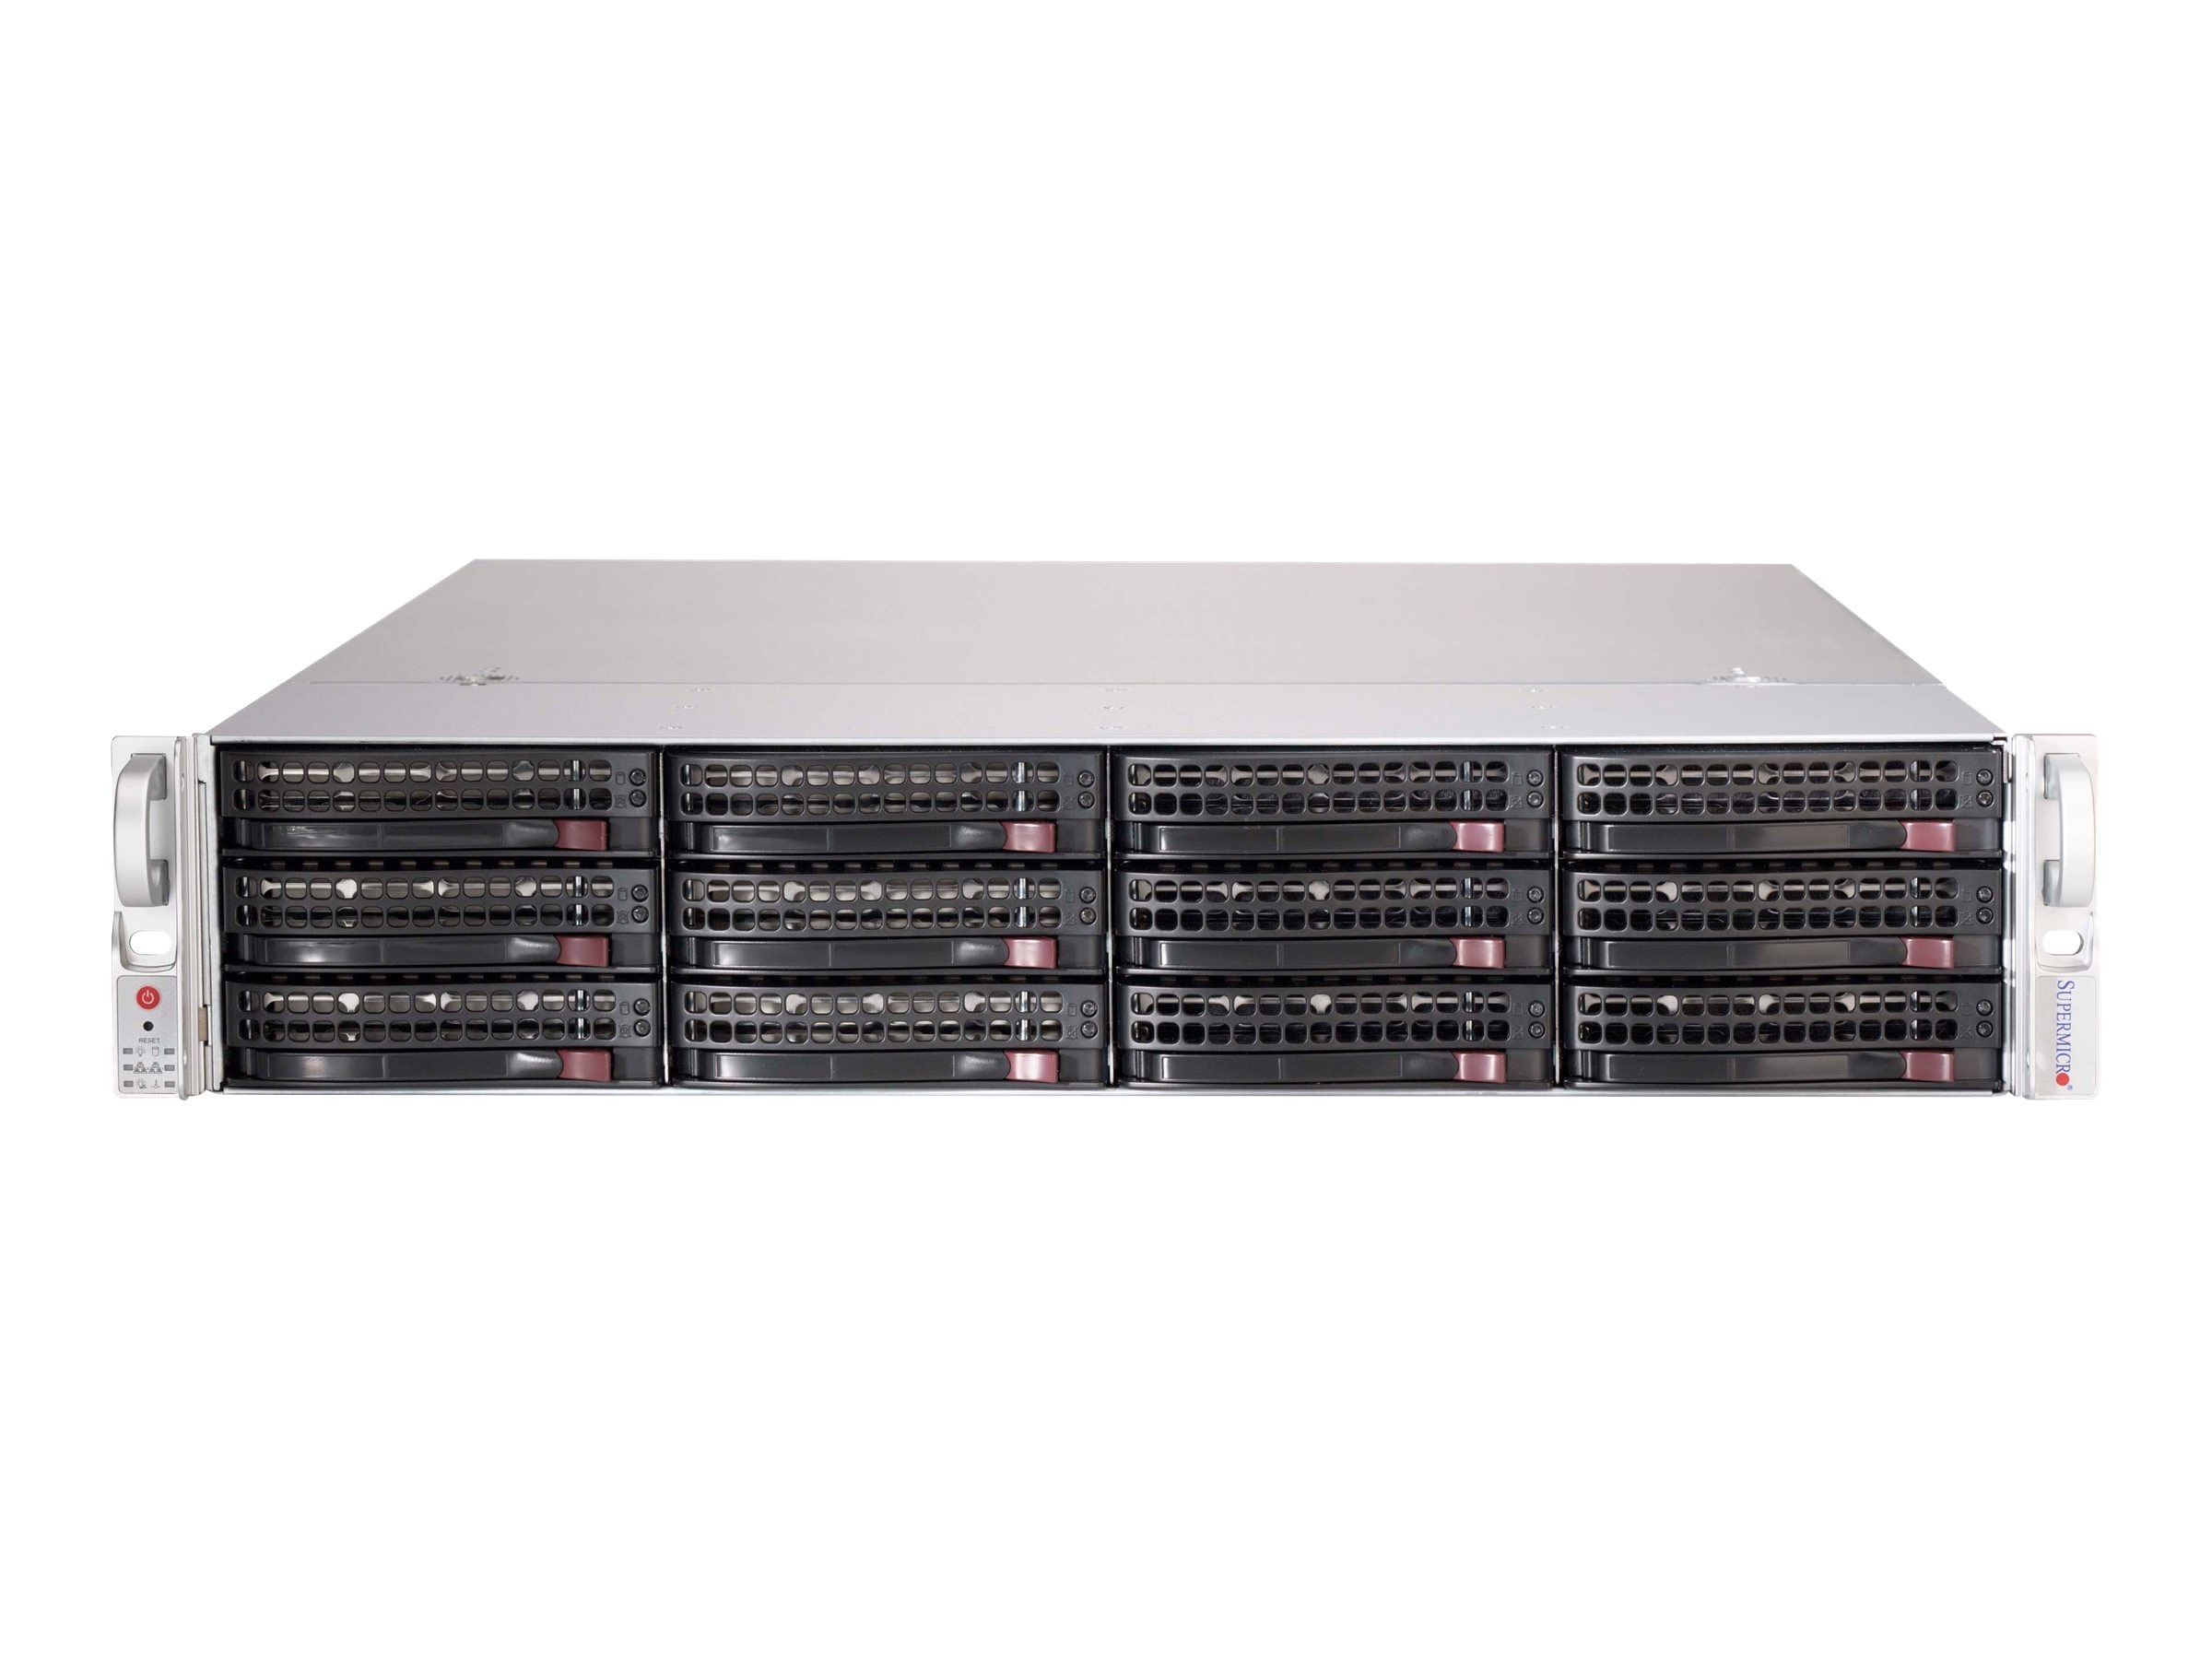 Supermicro Chassis, SuperChassis 826BE1C-R741JBOD 2U RM 12x3.5 HS Bays 2x740W, CSE-826BE1C-R741JBOD